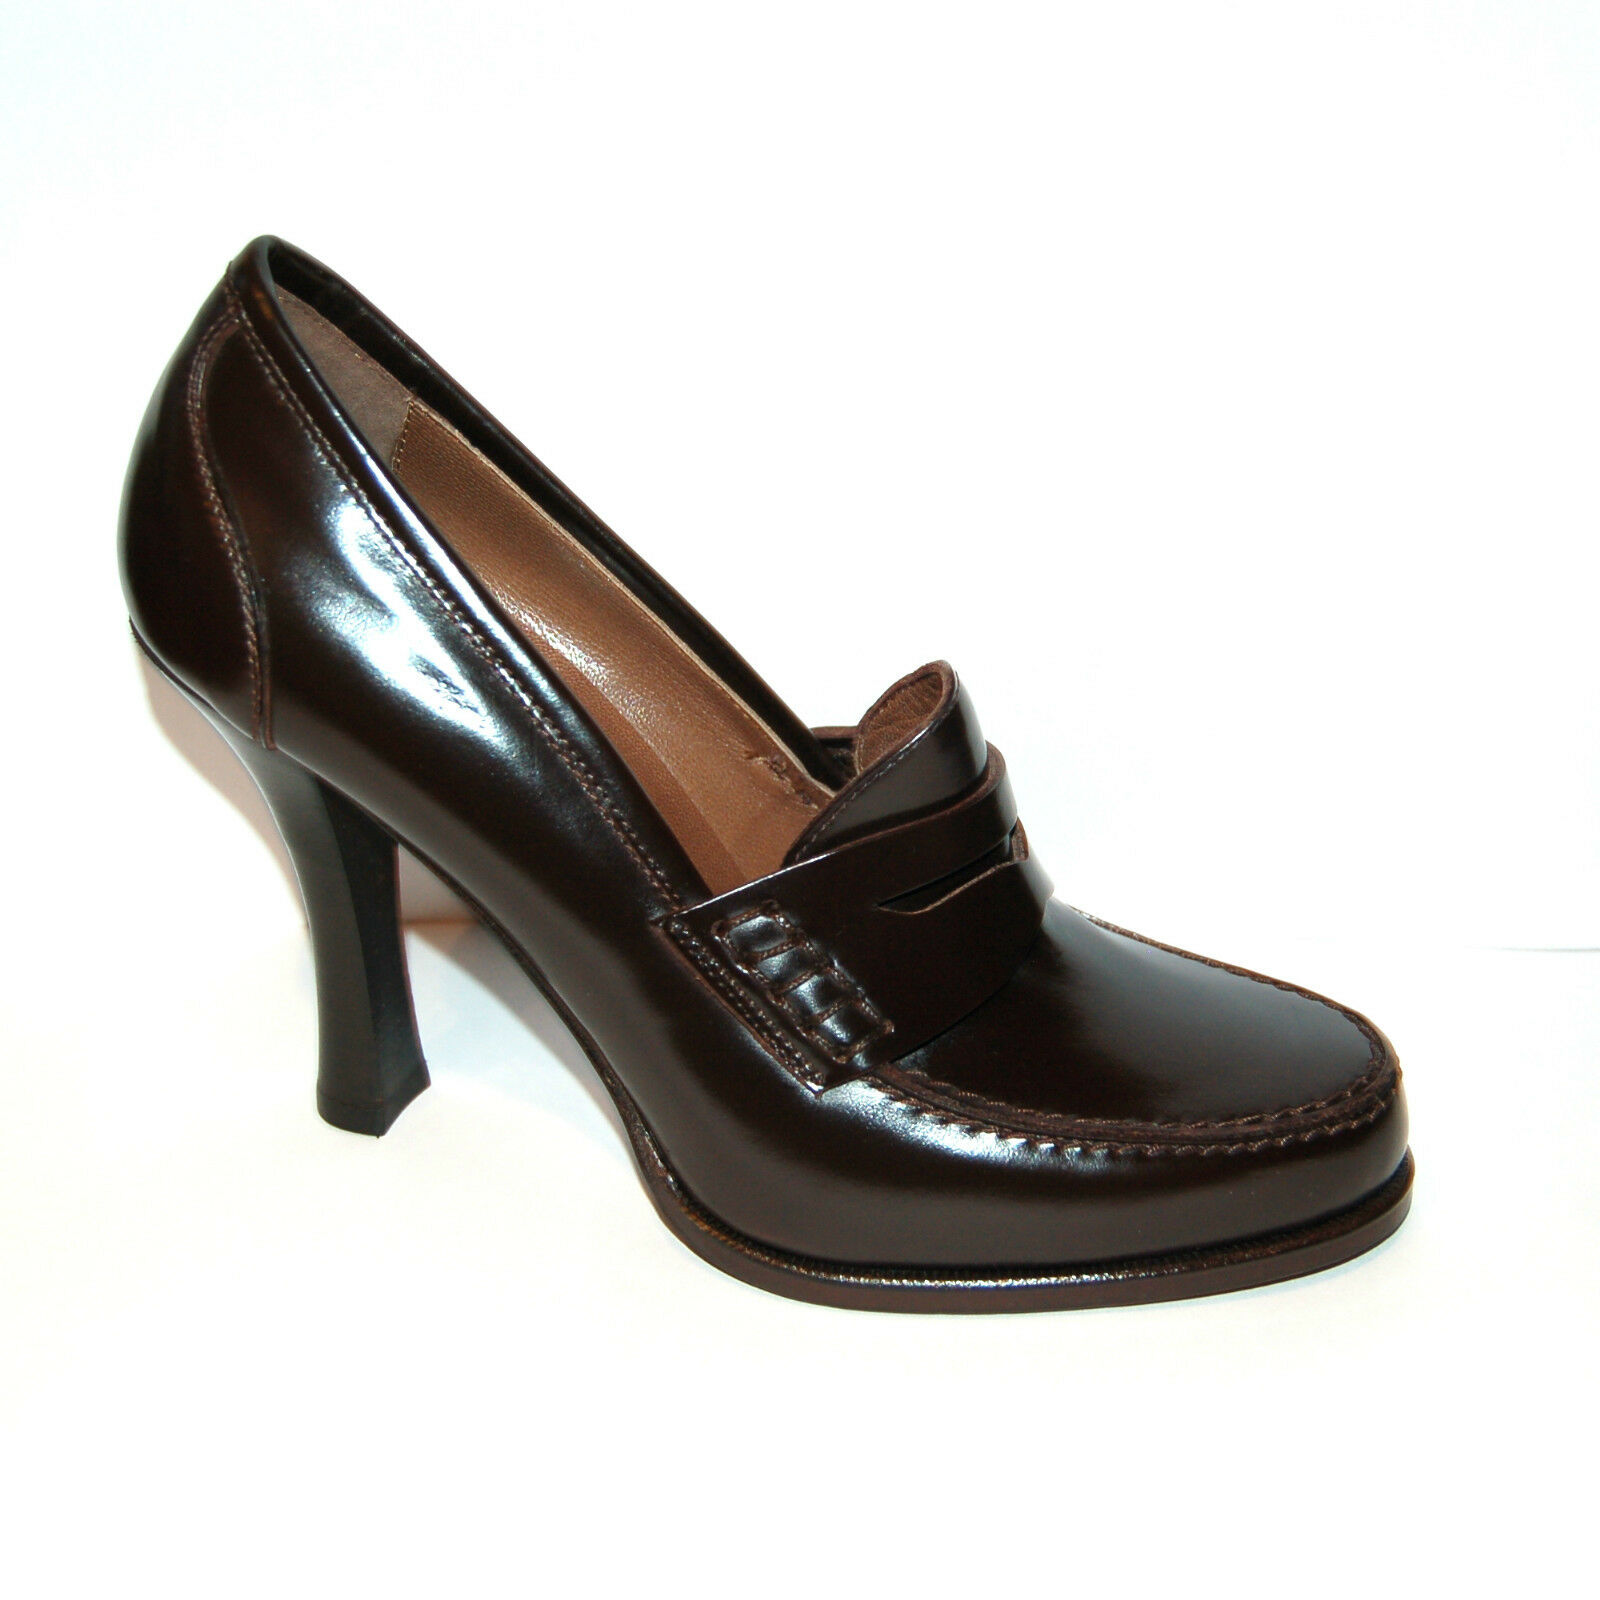 WOMEN - 38 - HEAD BROWN  CALF PENNY LOAFER PUMP - H.HEEL 10cm - LEATHER SOLE